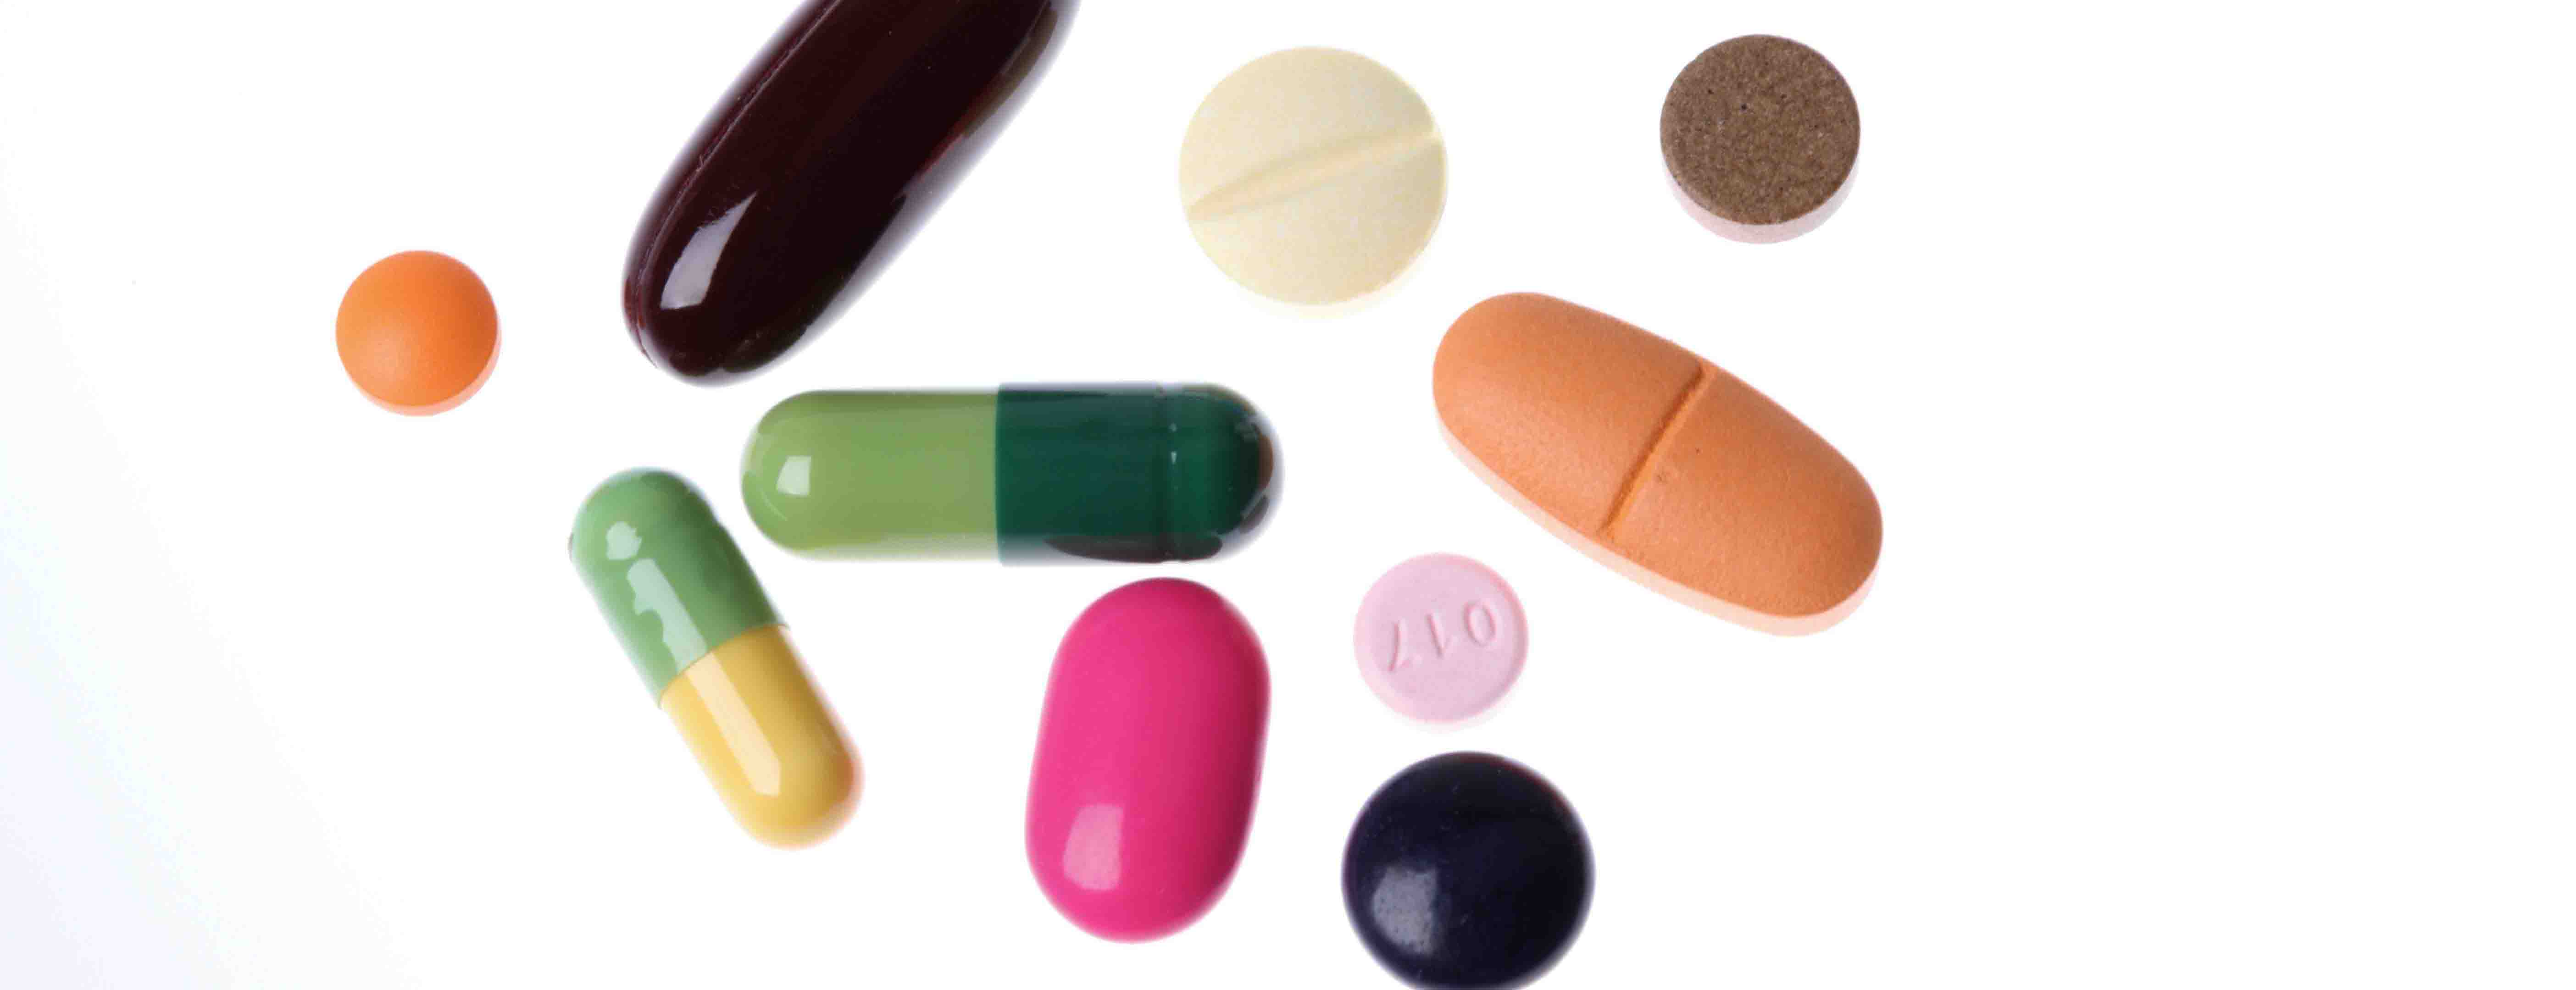 differen-types-of-pills-capsules-and-medicines